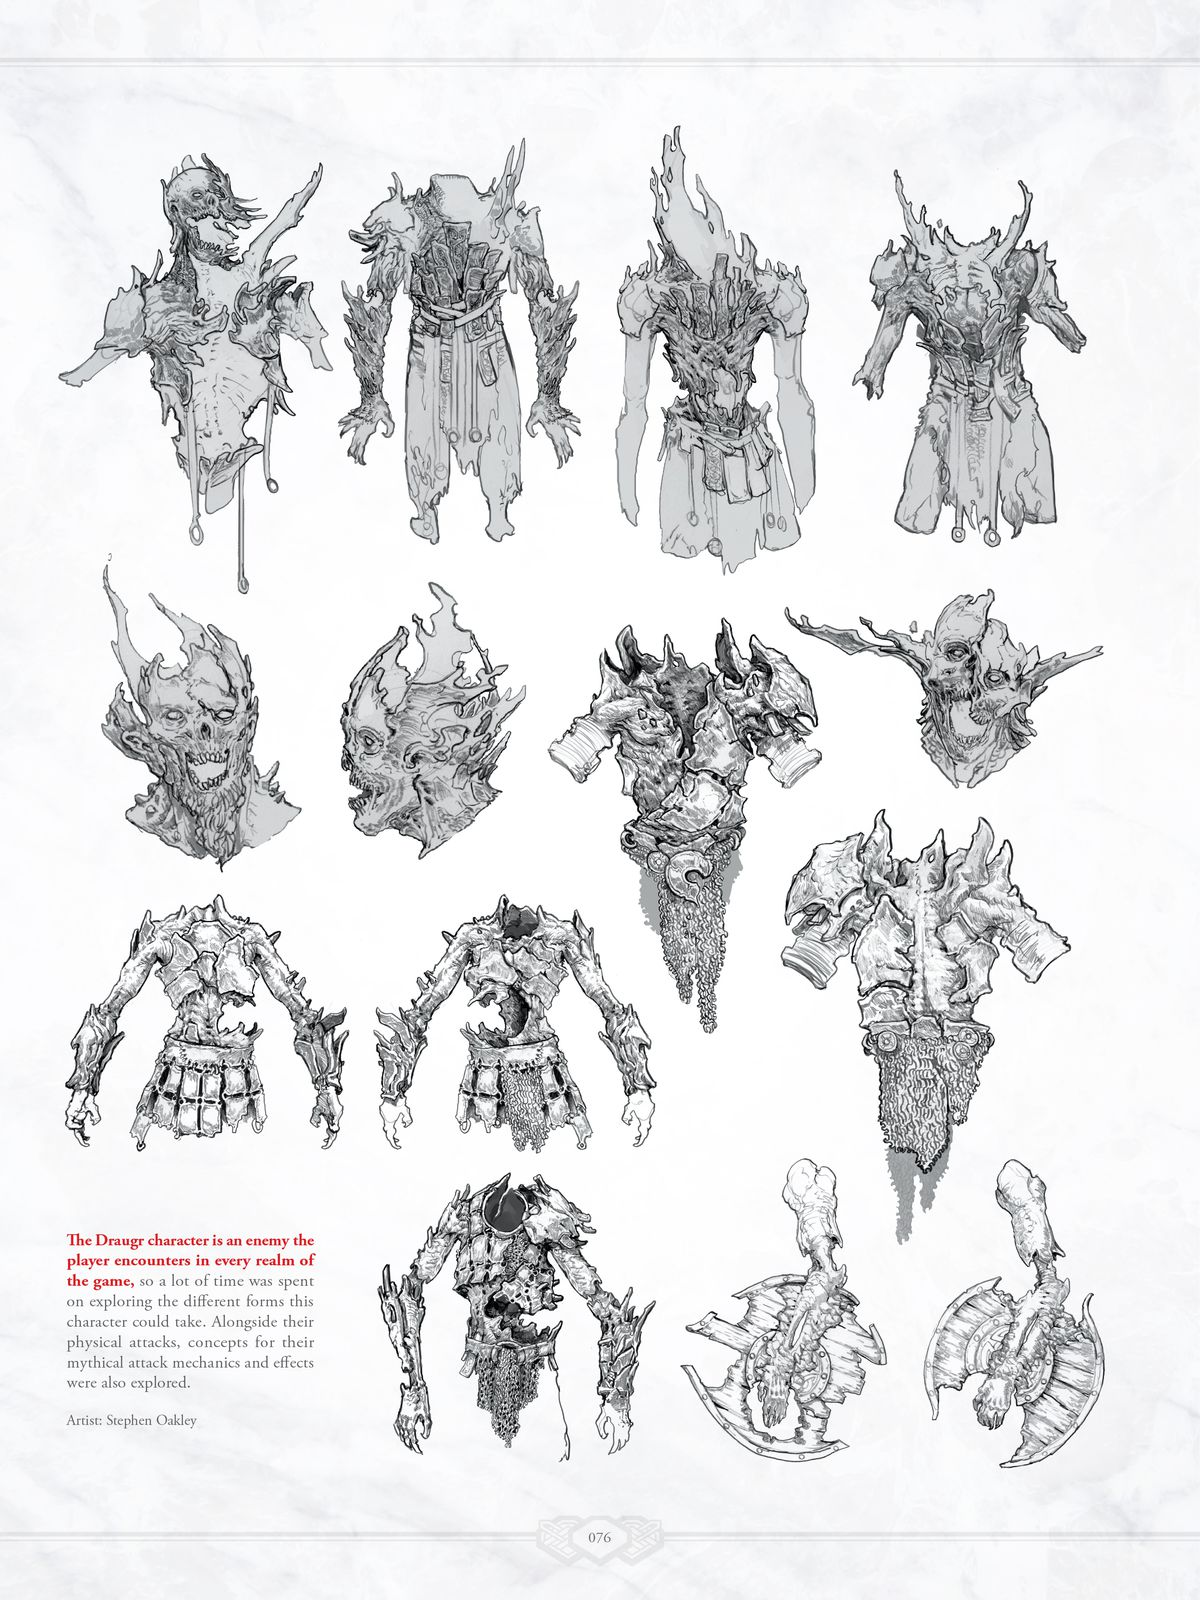 From The Art of God of War